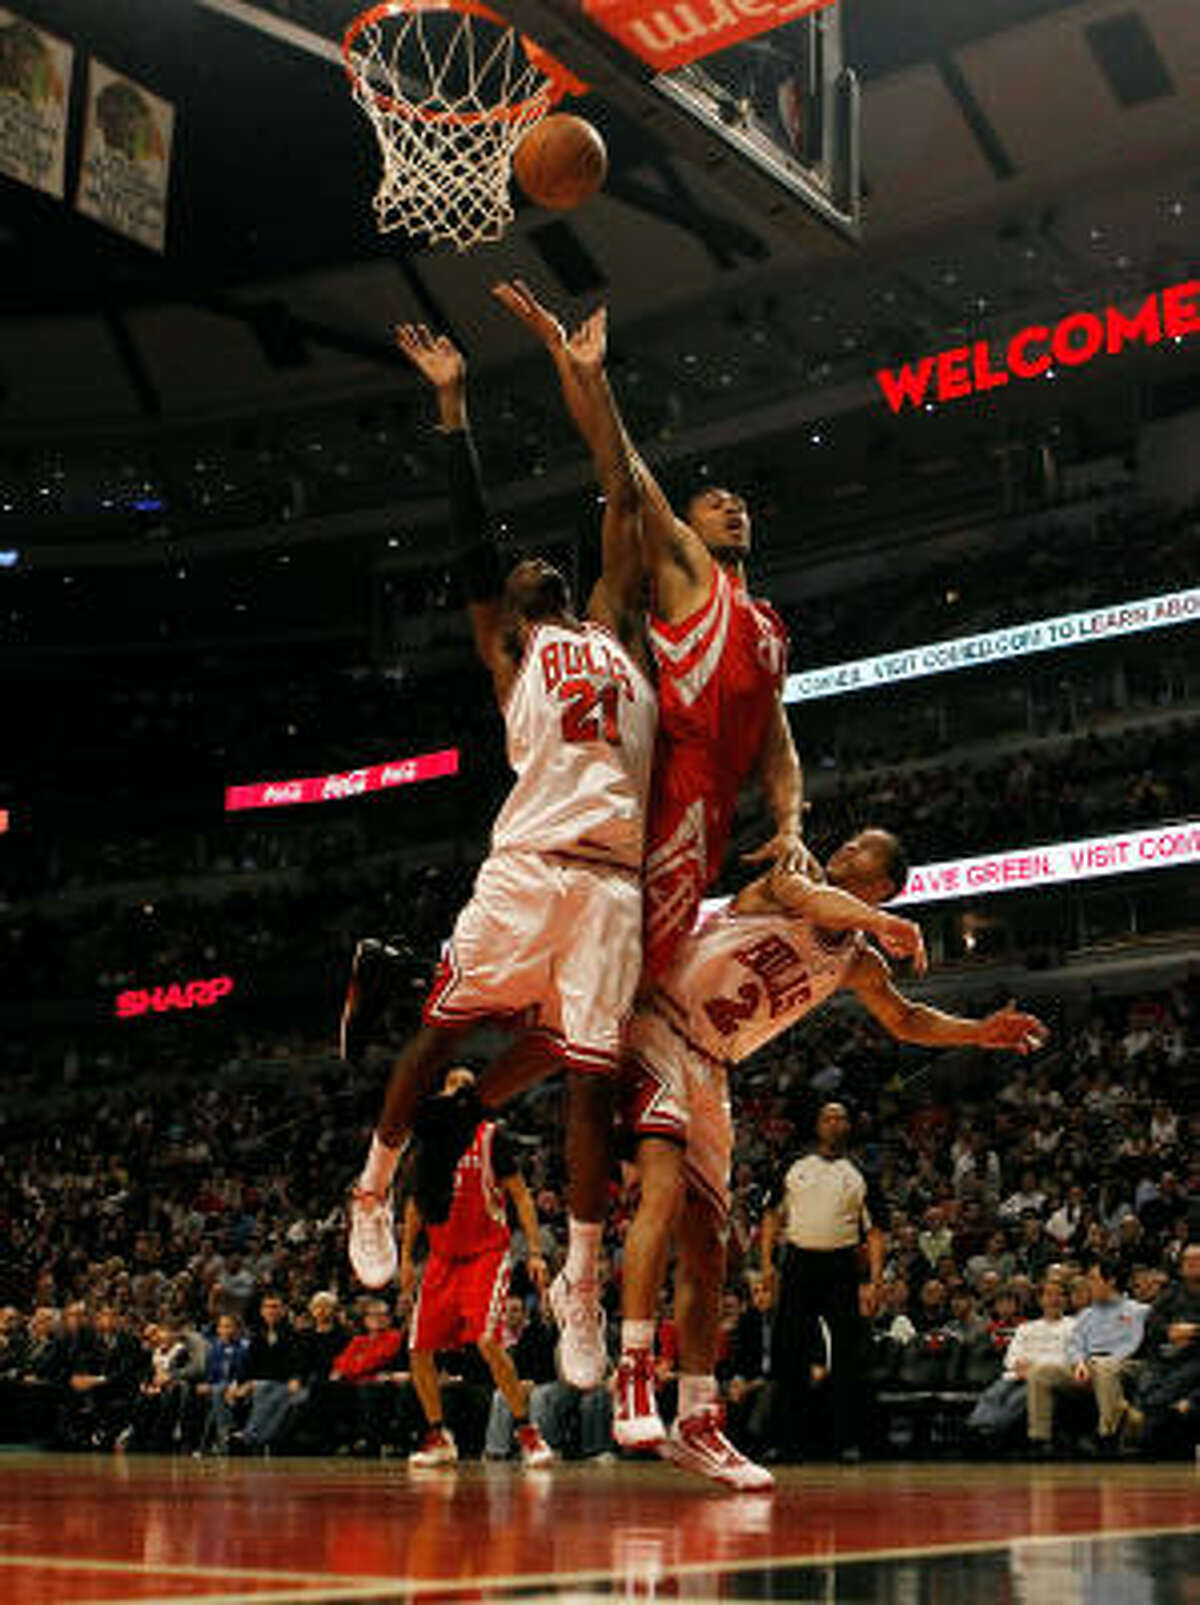 Jared Jeffries of the Houston Rockets tries to put up a shot between Hakim Warrick, left,and Jannero Pargo of the Chicago Bulls. Jeffries left the game with a strained left Achilles.